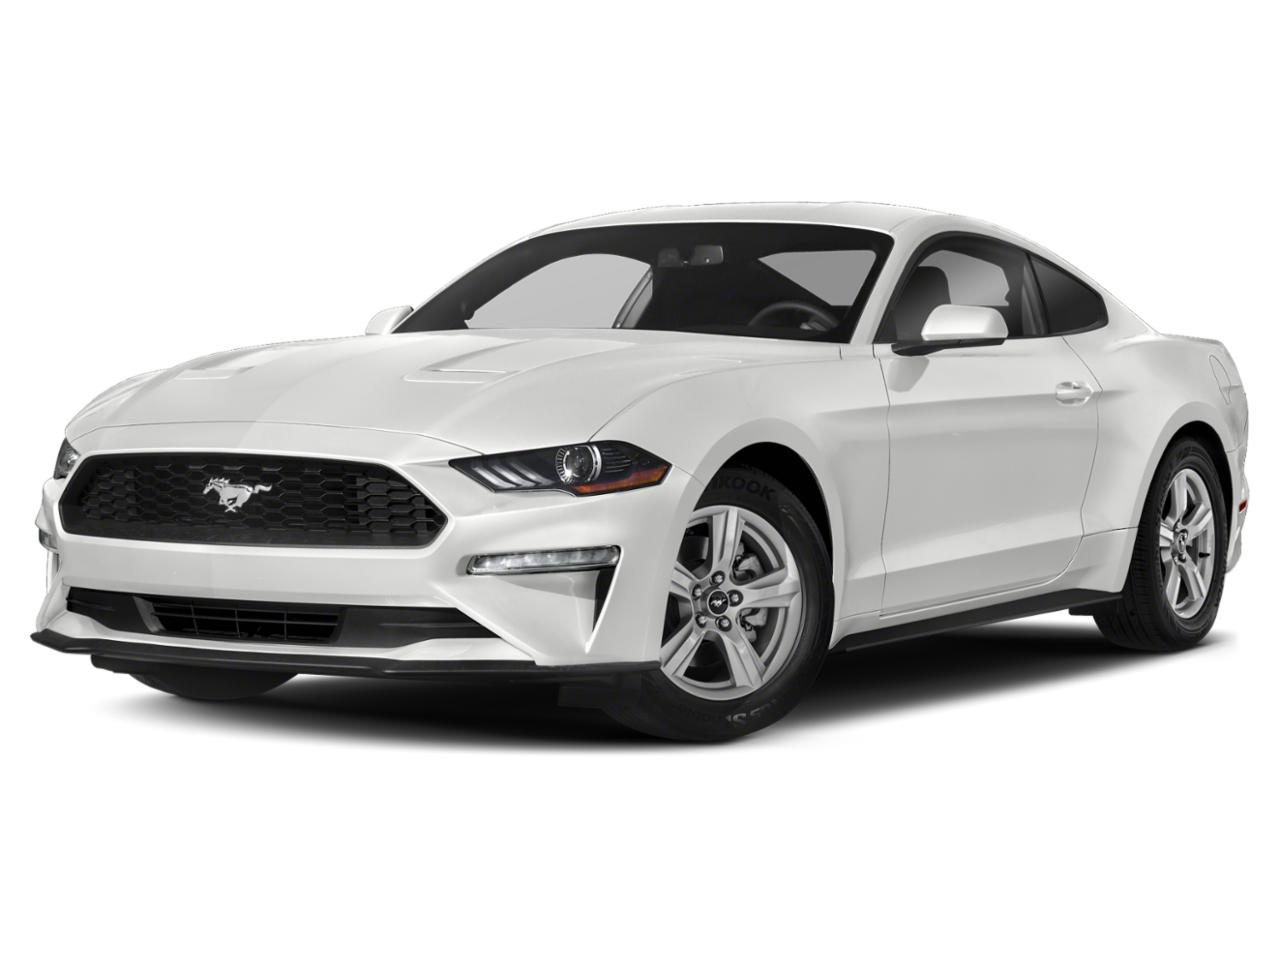 Oxford White 2020 Ford Mustang GT PREMIUM 2dr Car Raleigh NC